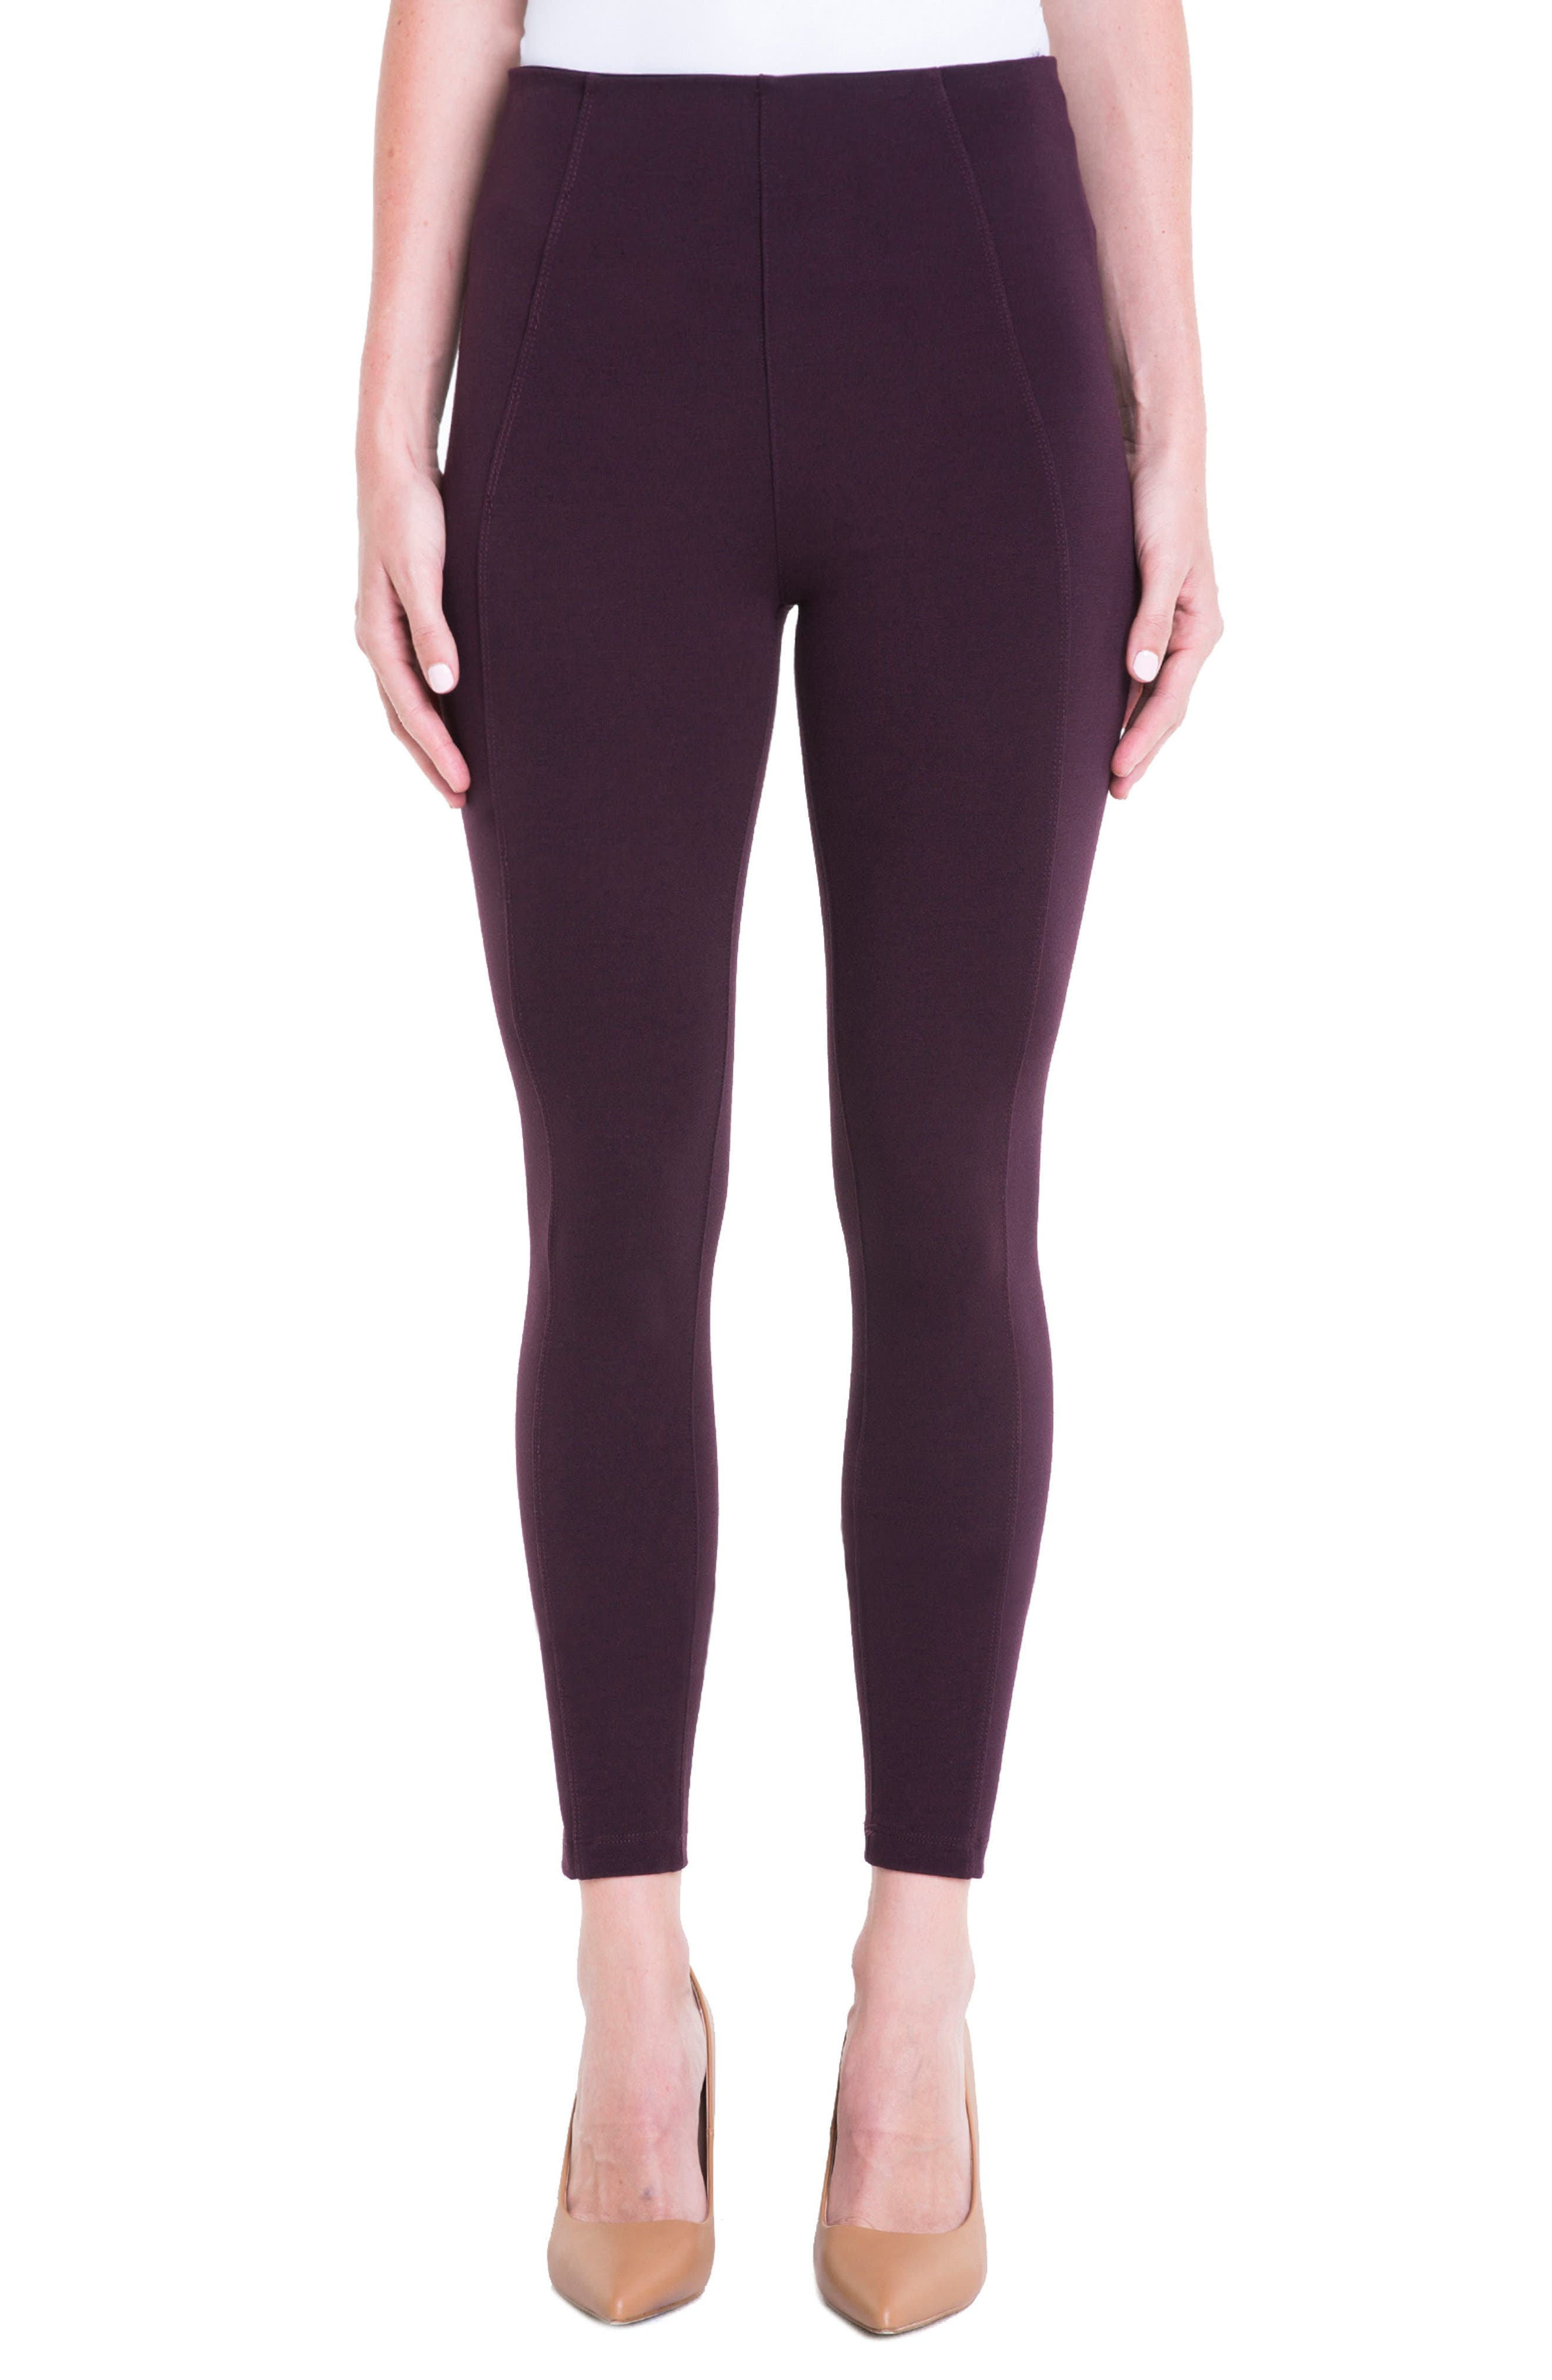 Main Image - Liverpool Jeans Company Reese Ankle Leggings